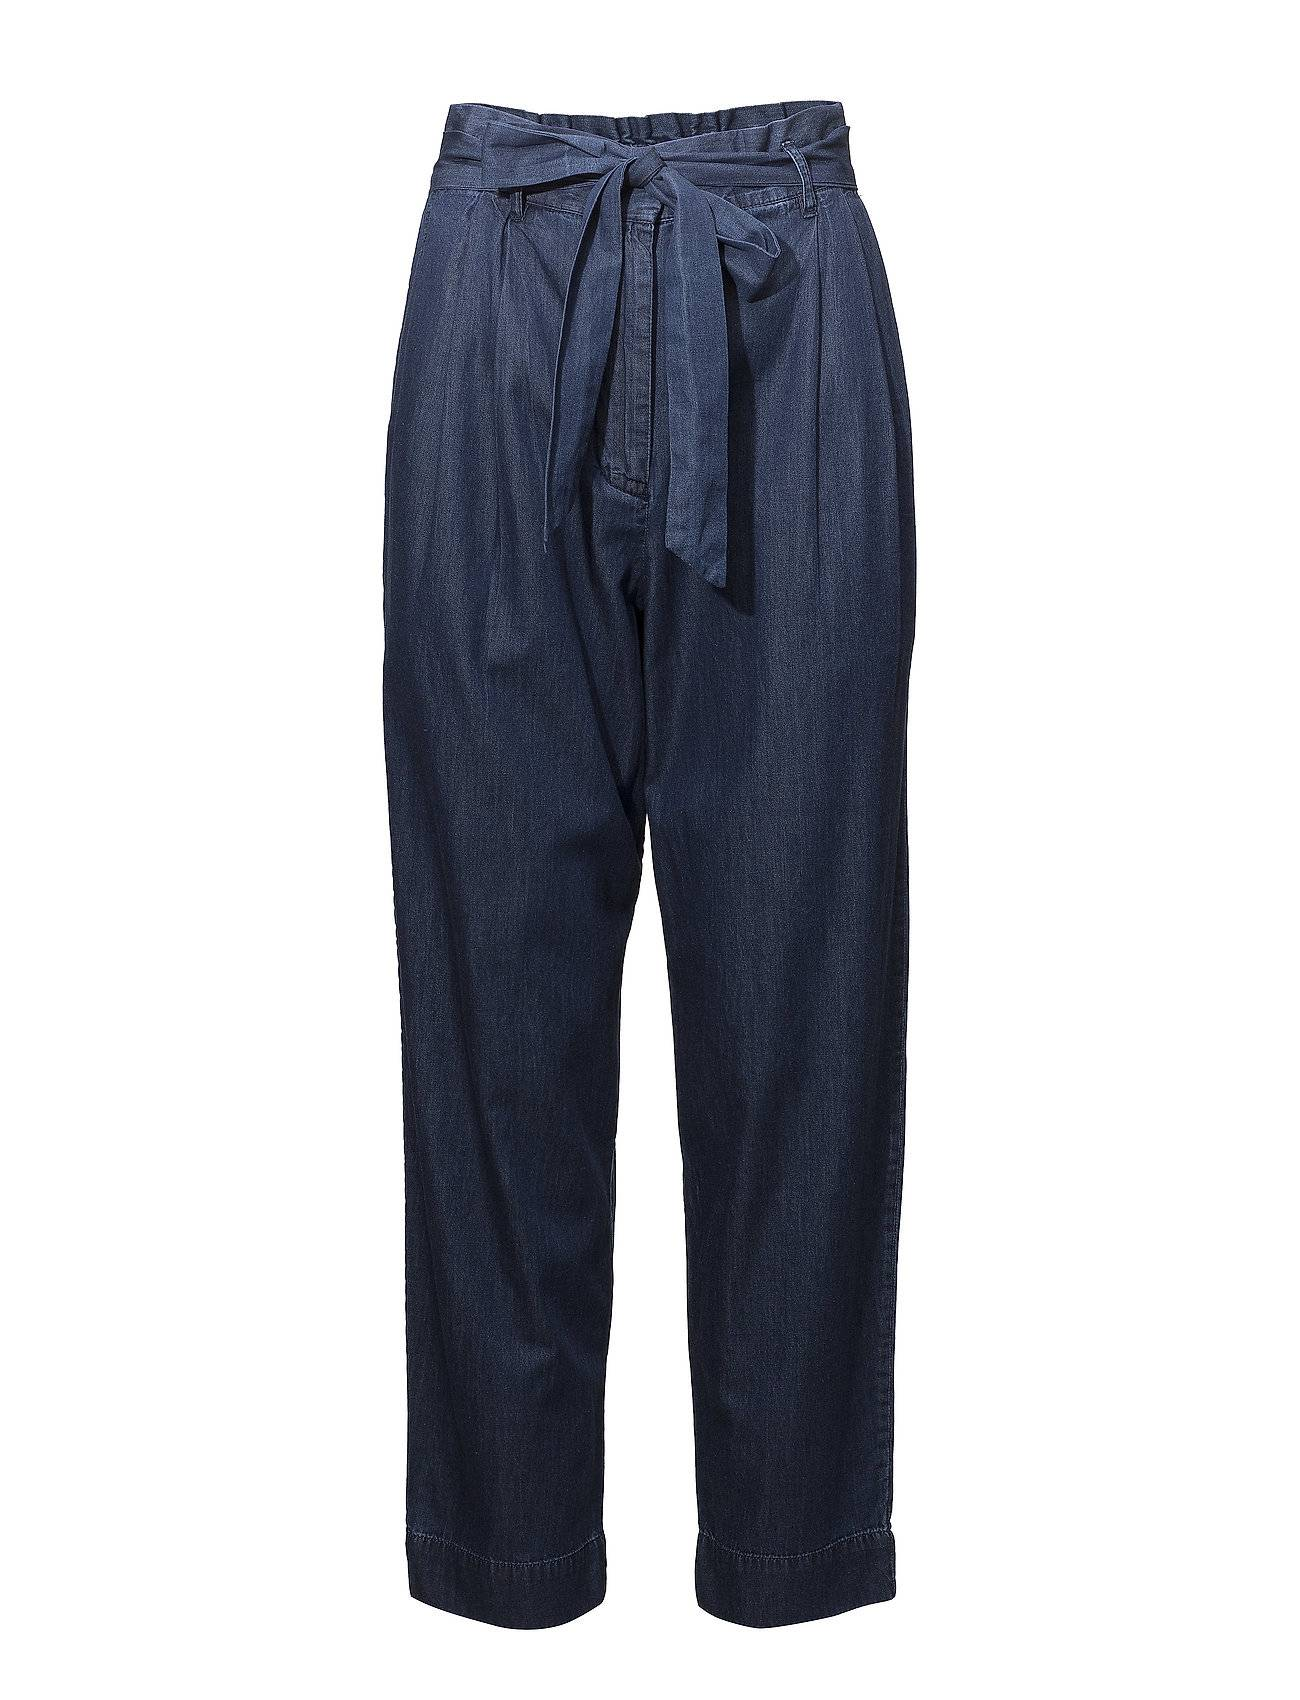 French Connection Geada Light Denim Tapered Trouser